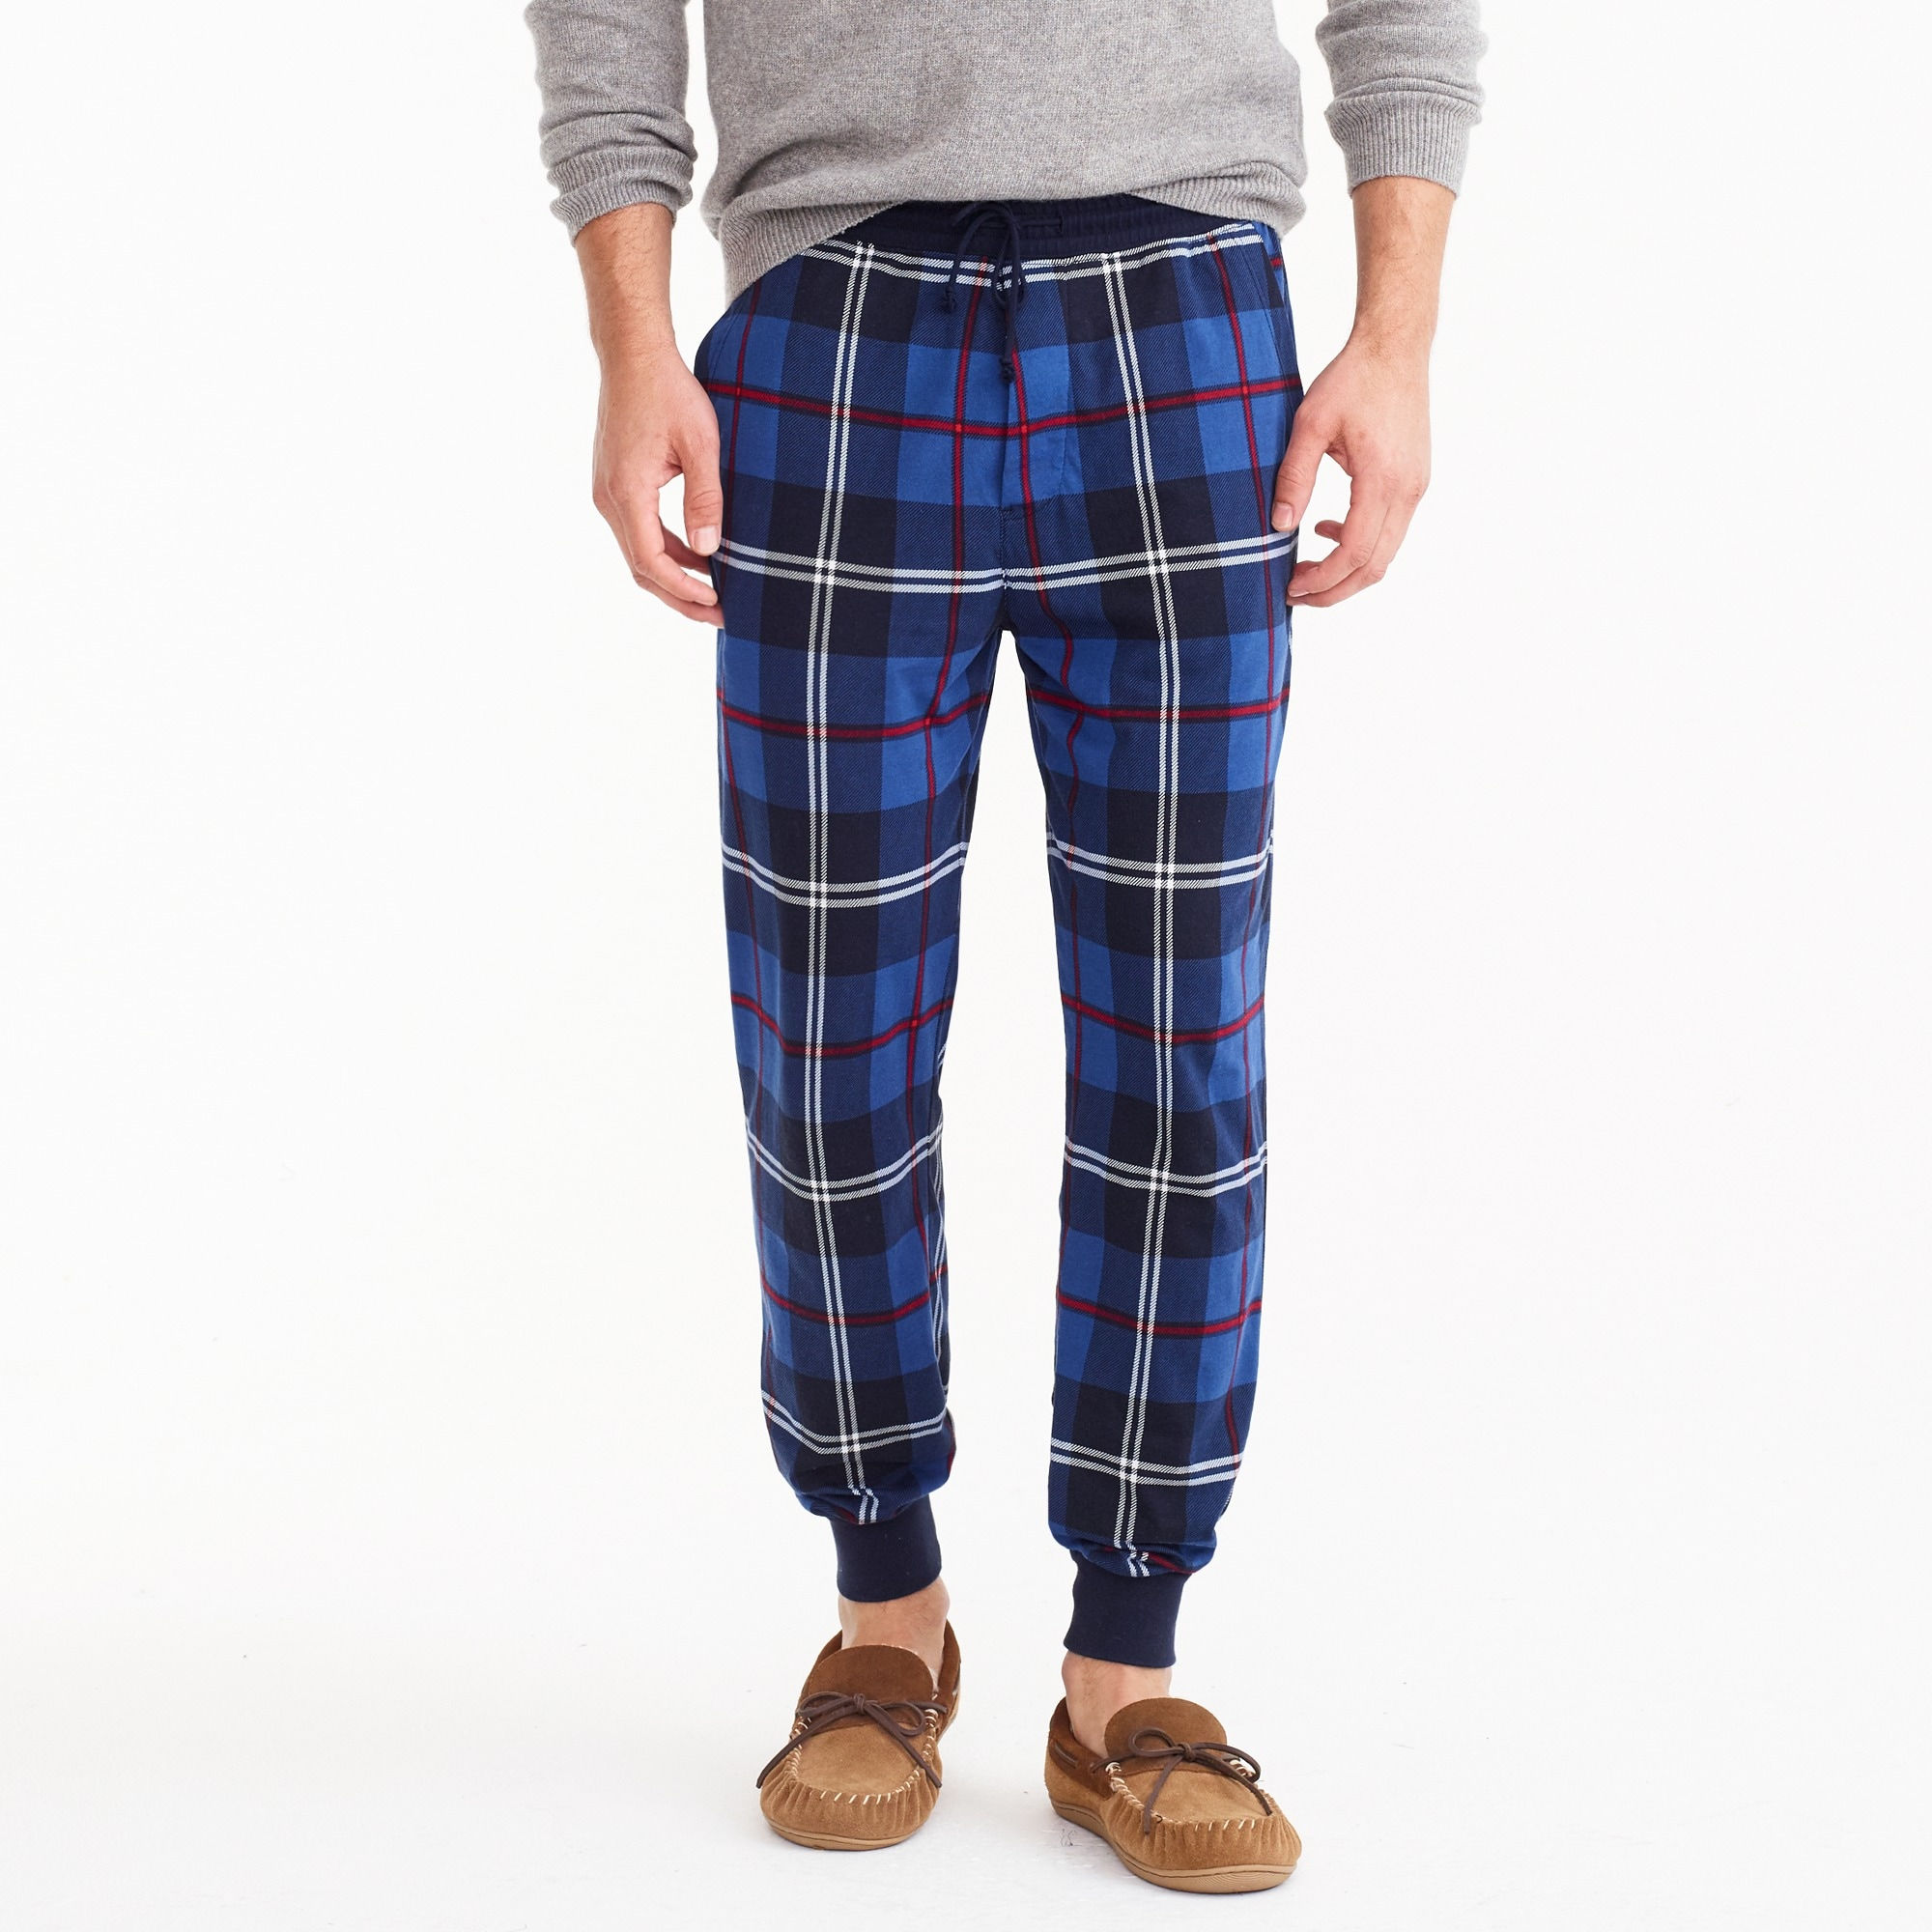 men's flannel lounge pant - men's lounge